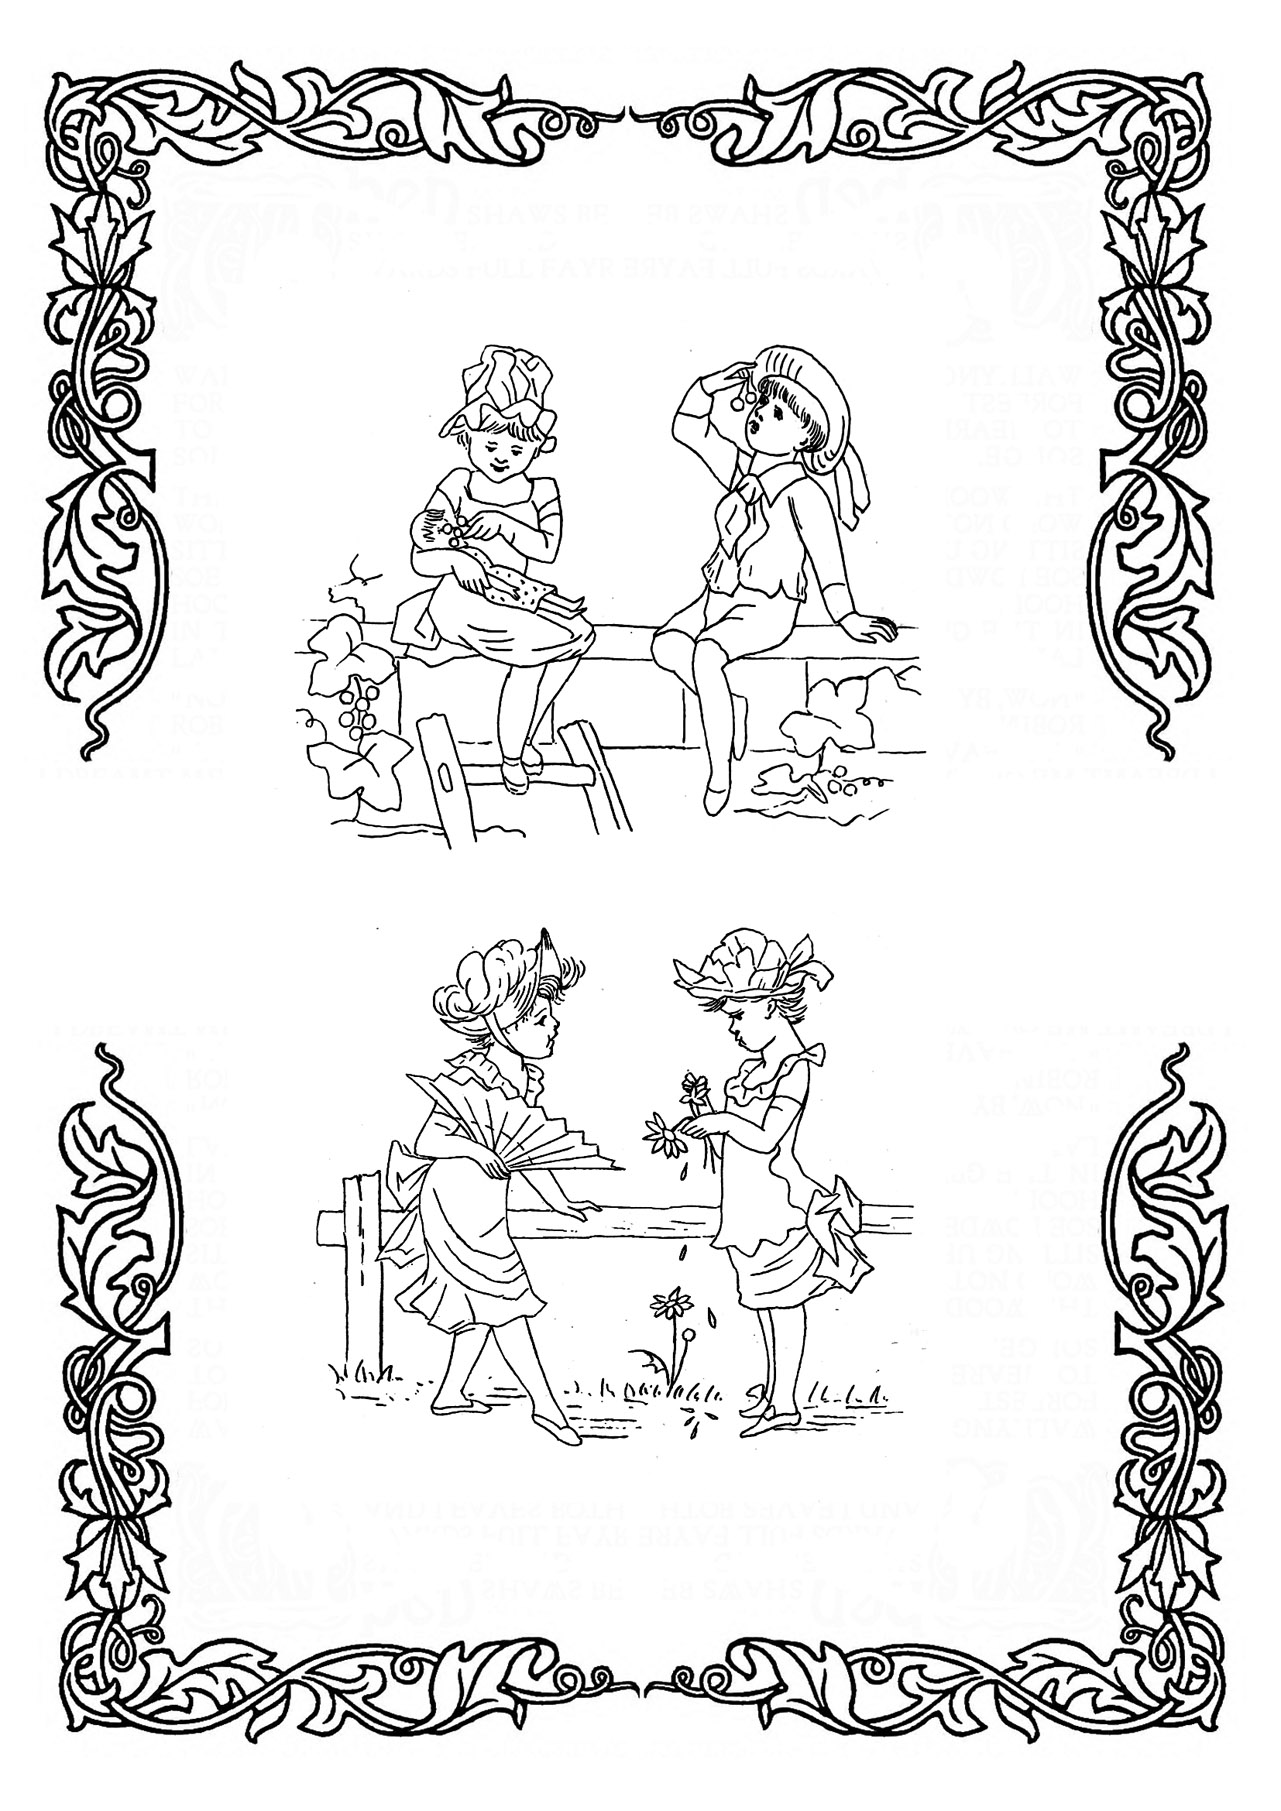 victorian colouring sheets victorian woman coloring pages download and print for free victorian sheets colouring